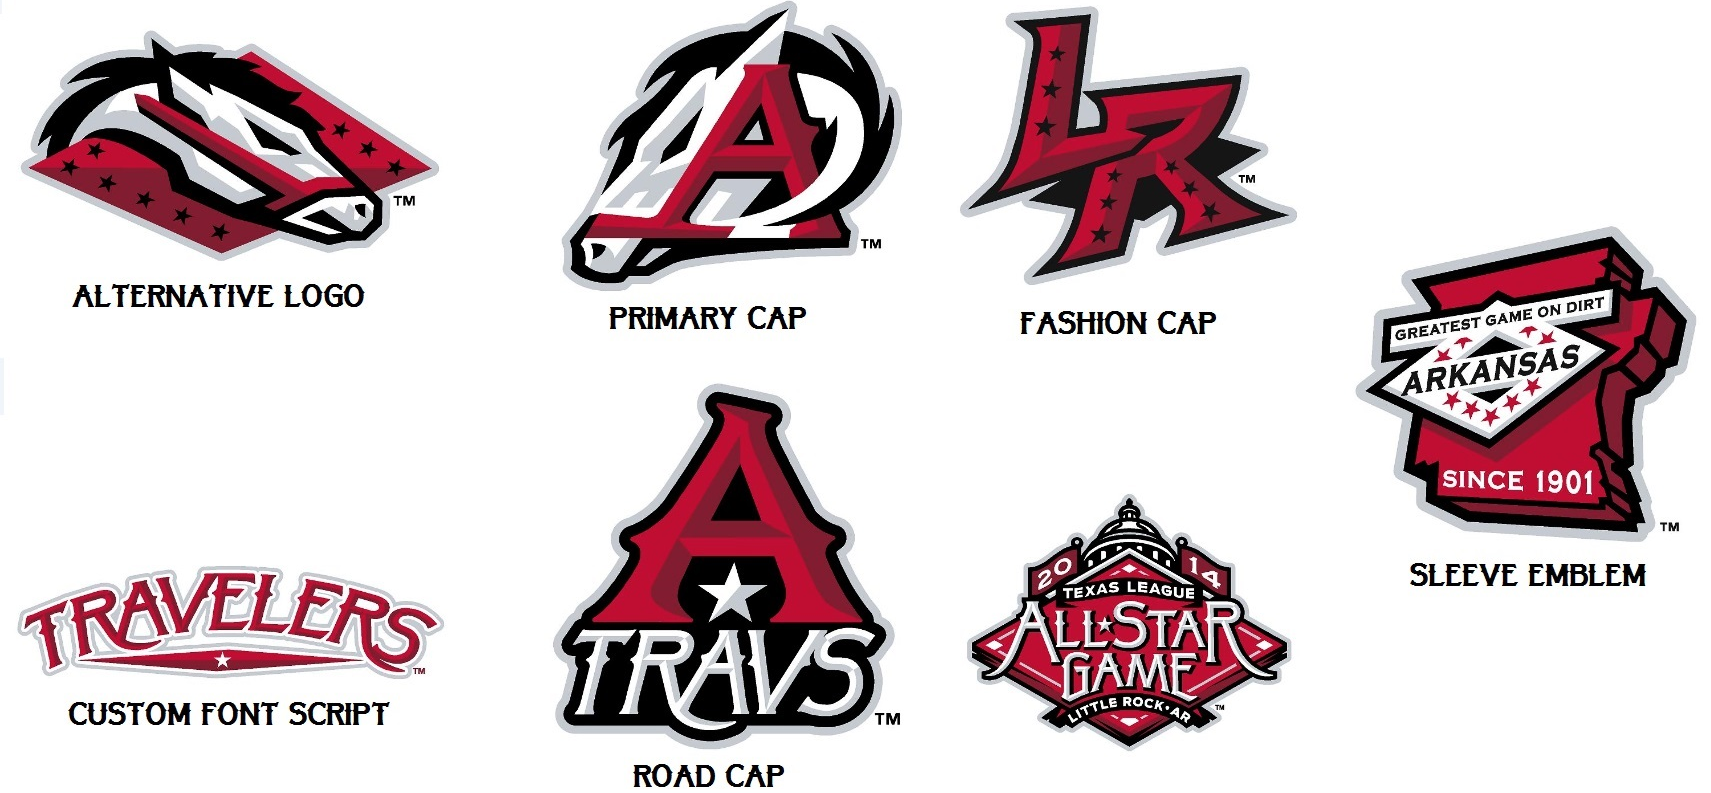 Brand New: New Logo for Arkansas Travelers by Brandiose